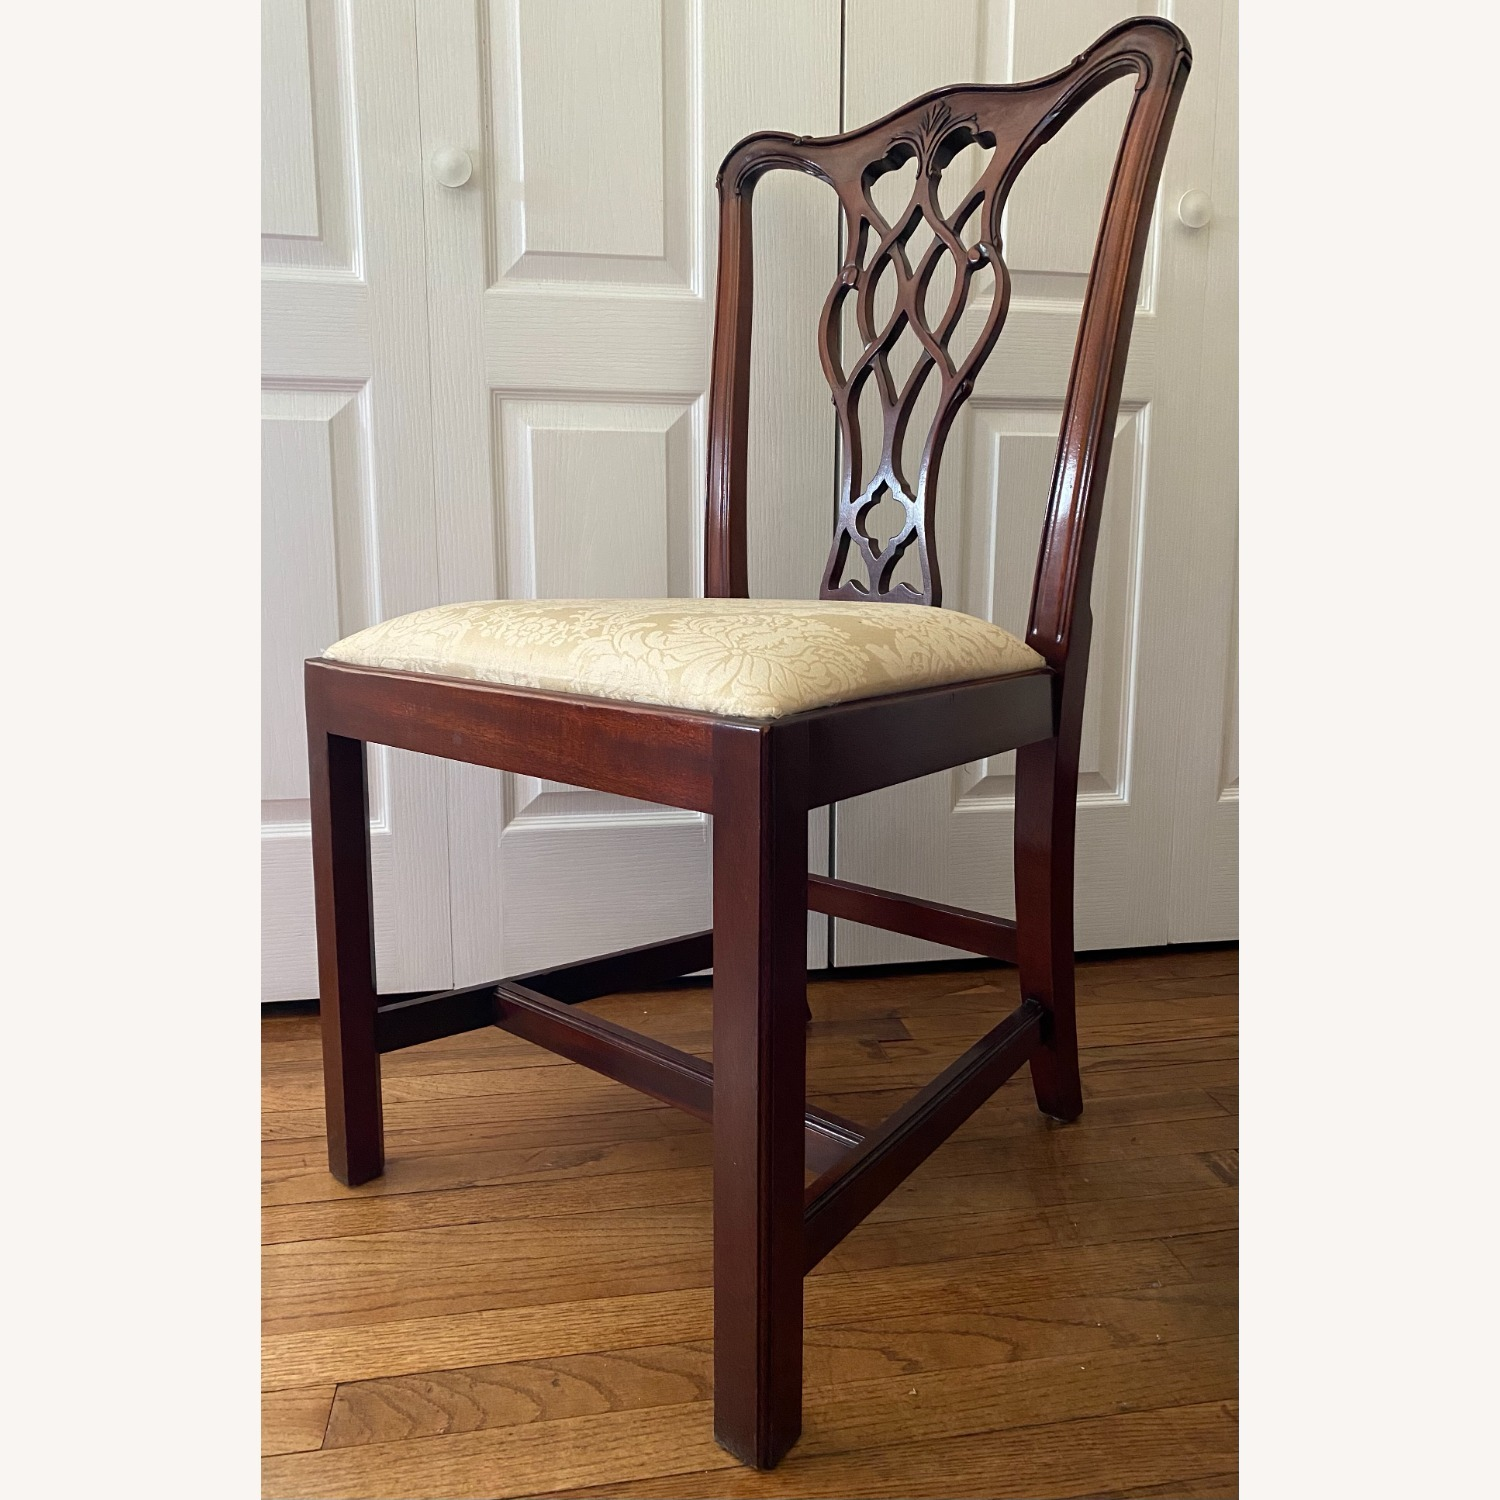 4 Councill Mahogany Chippendale Dining Chairs - image-3